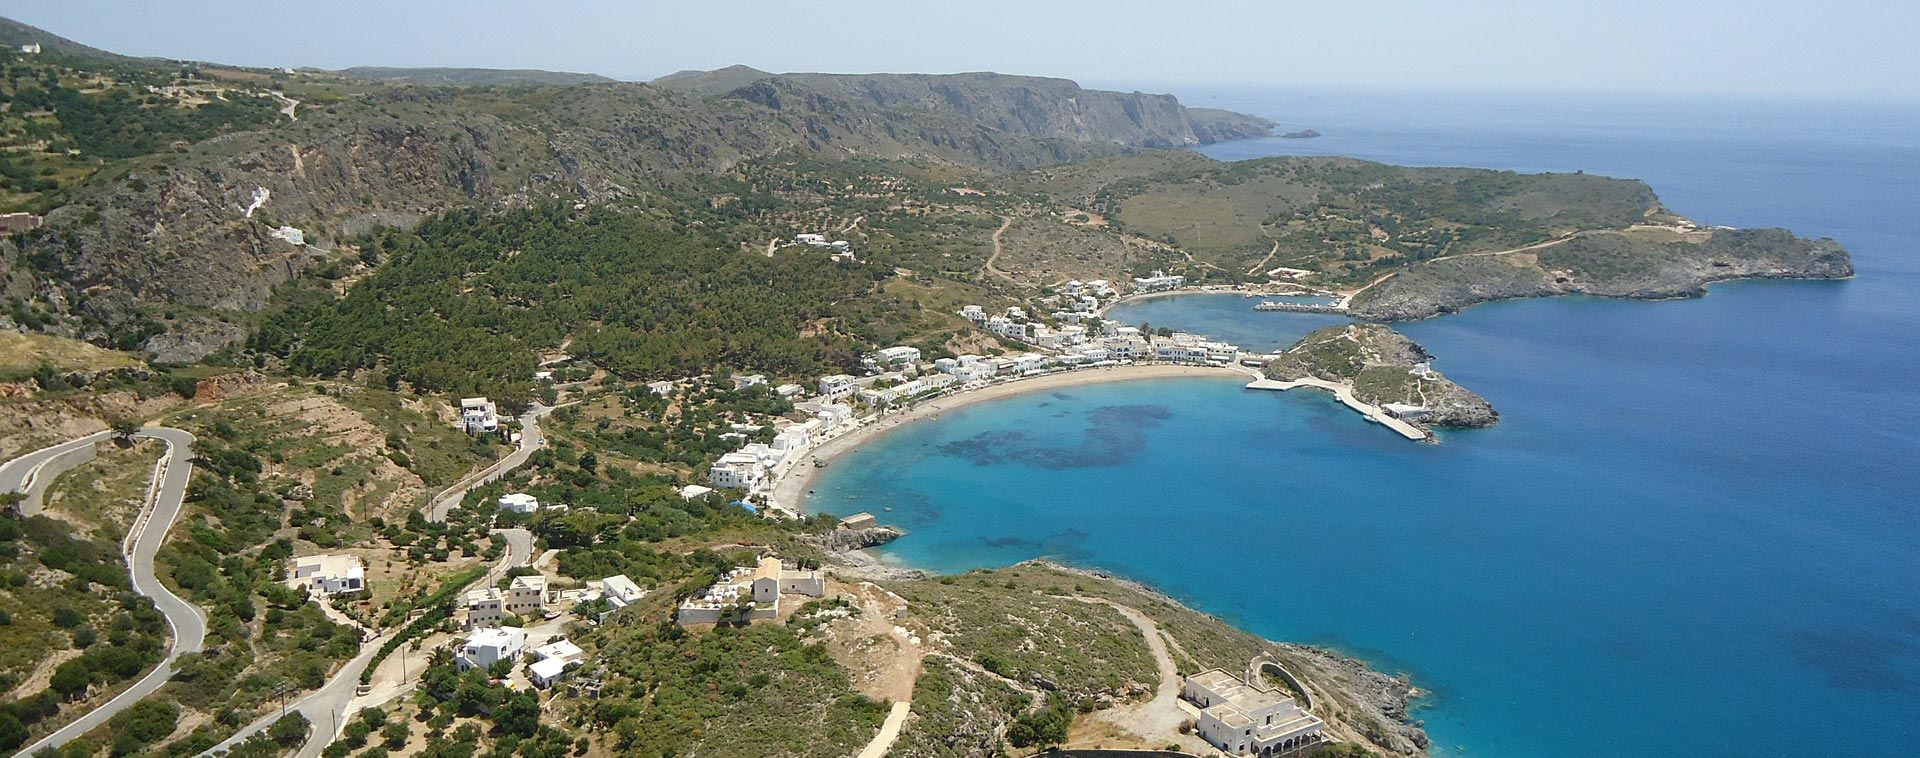 Sunniest Places in Greece - Kythira, Kapsali